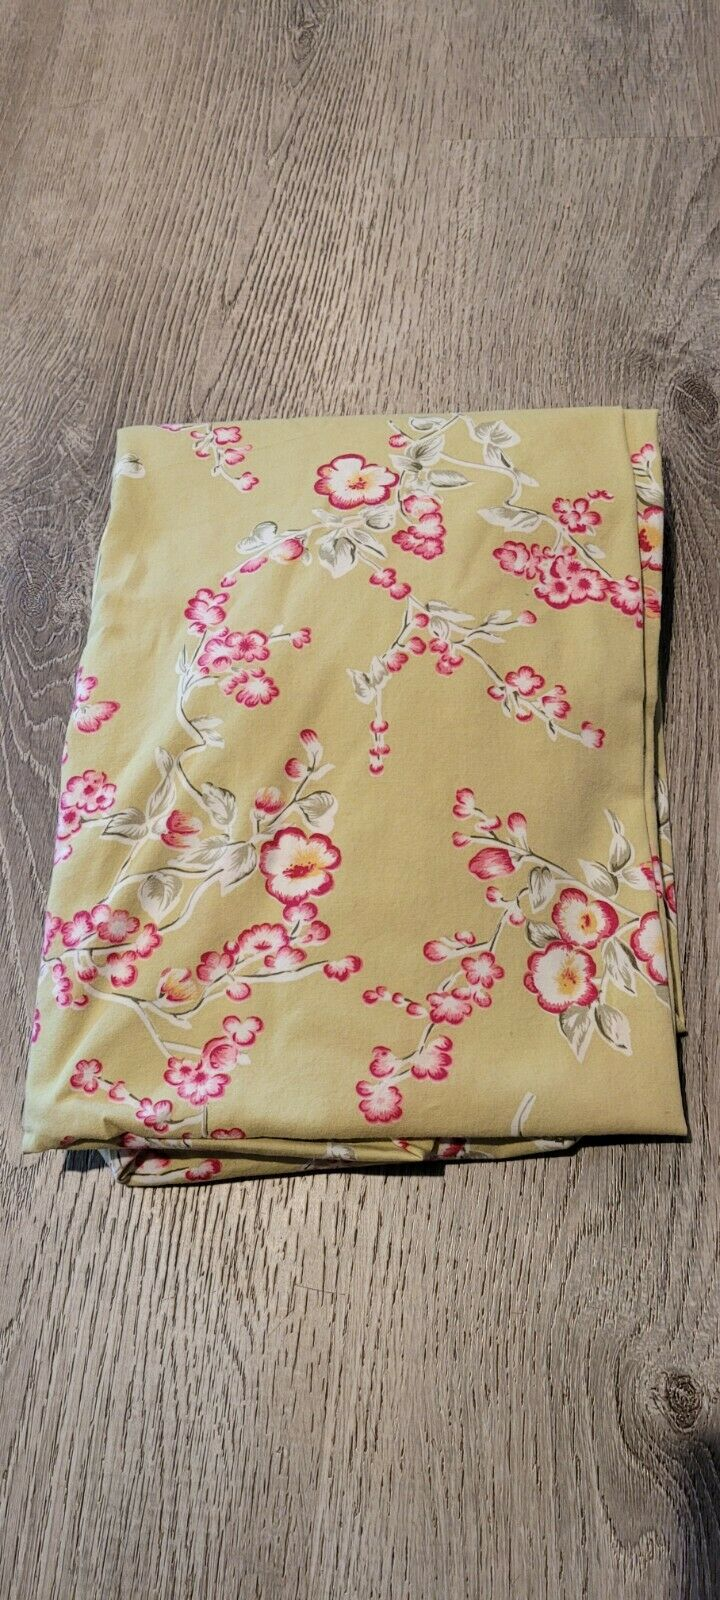 TADPOLES 2 PC BABY CRIB SHEET CRIB SKIRT GREEN CHERRY BLOSSOMS PINK FLOWERS - $18.50